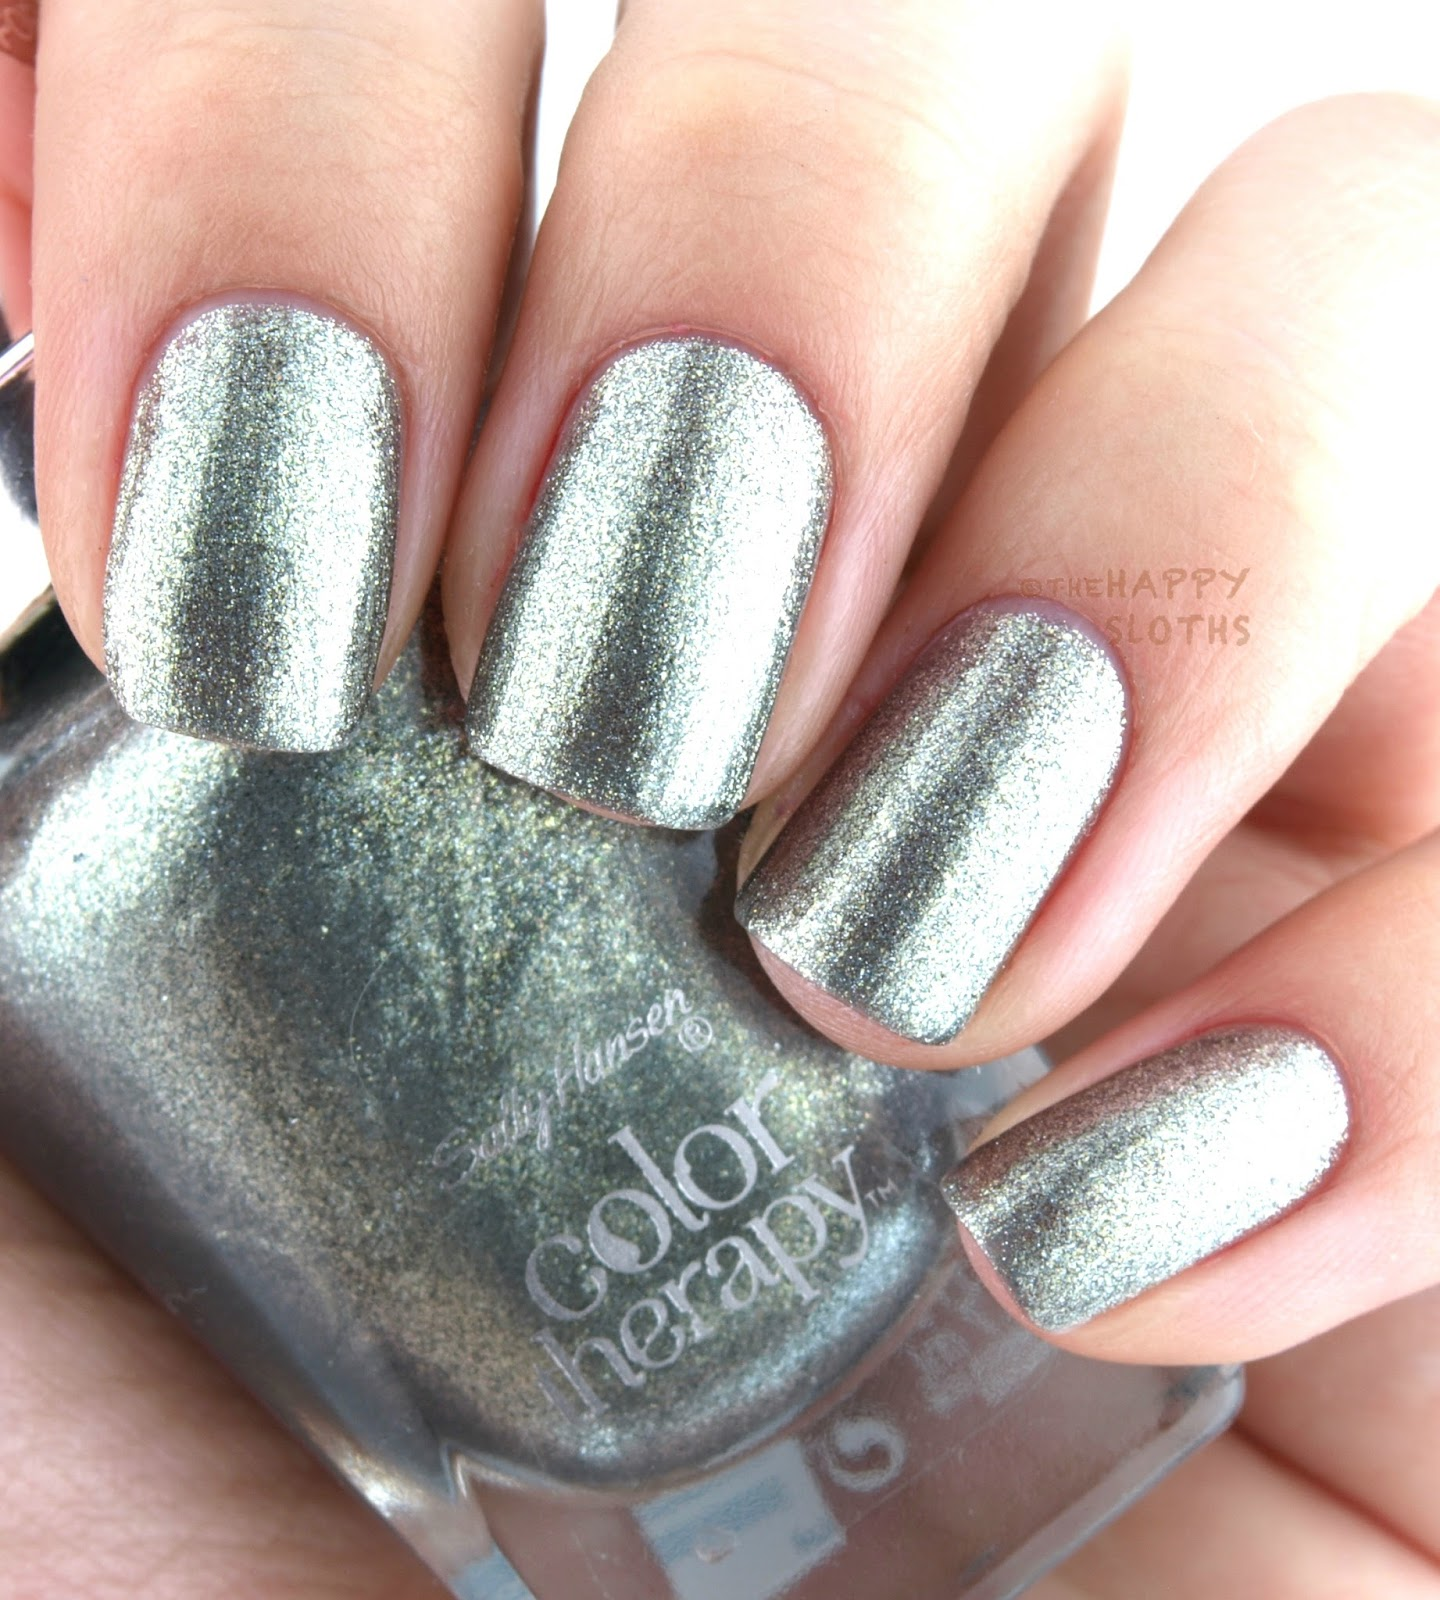 Colour therapy for stomach - Sally Hansen Color Therapy Nail Polish Review And Swatches The Happy Sloths Bloglovin